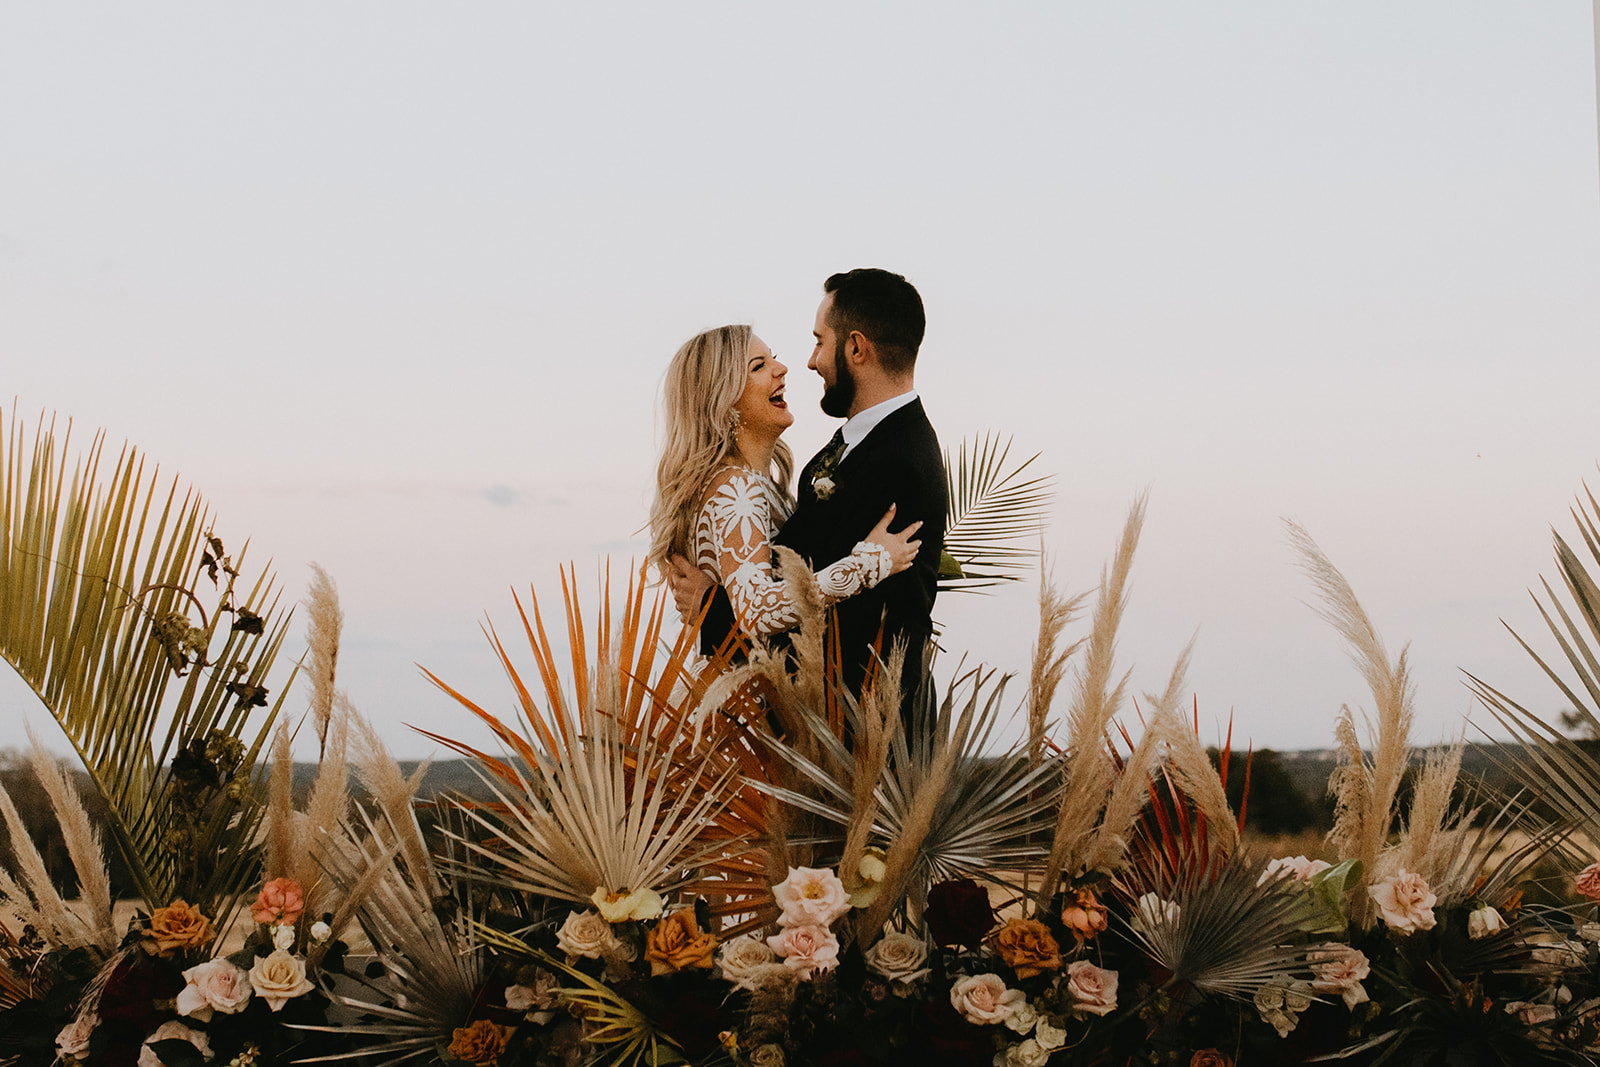 Epoch Co+ | Bride + Groom First Look Portraits | Austin Wedding Venue Prospect House | Adventure + Country + Outdoors + Moody + Wedding Ceremony Decor Florals + Colorful Tropical Palm Fronds + Boho  | Austin Wedding Photographer Century Tree Productions